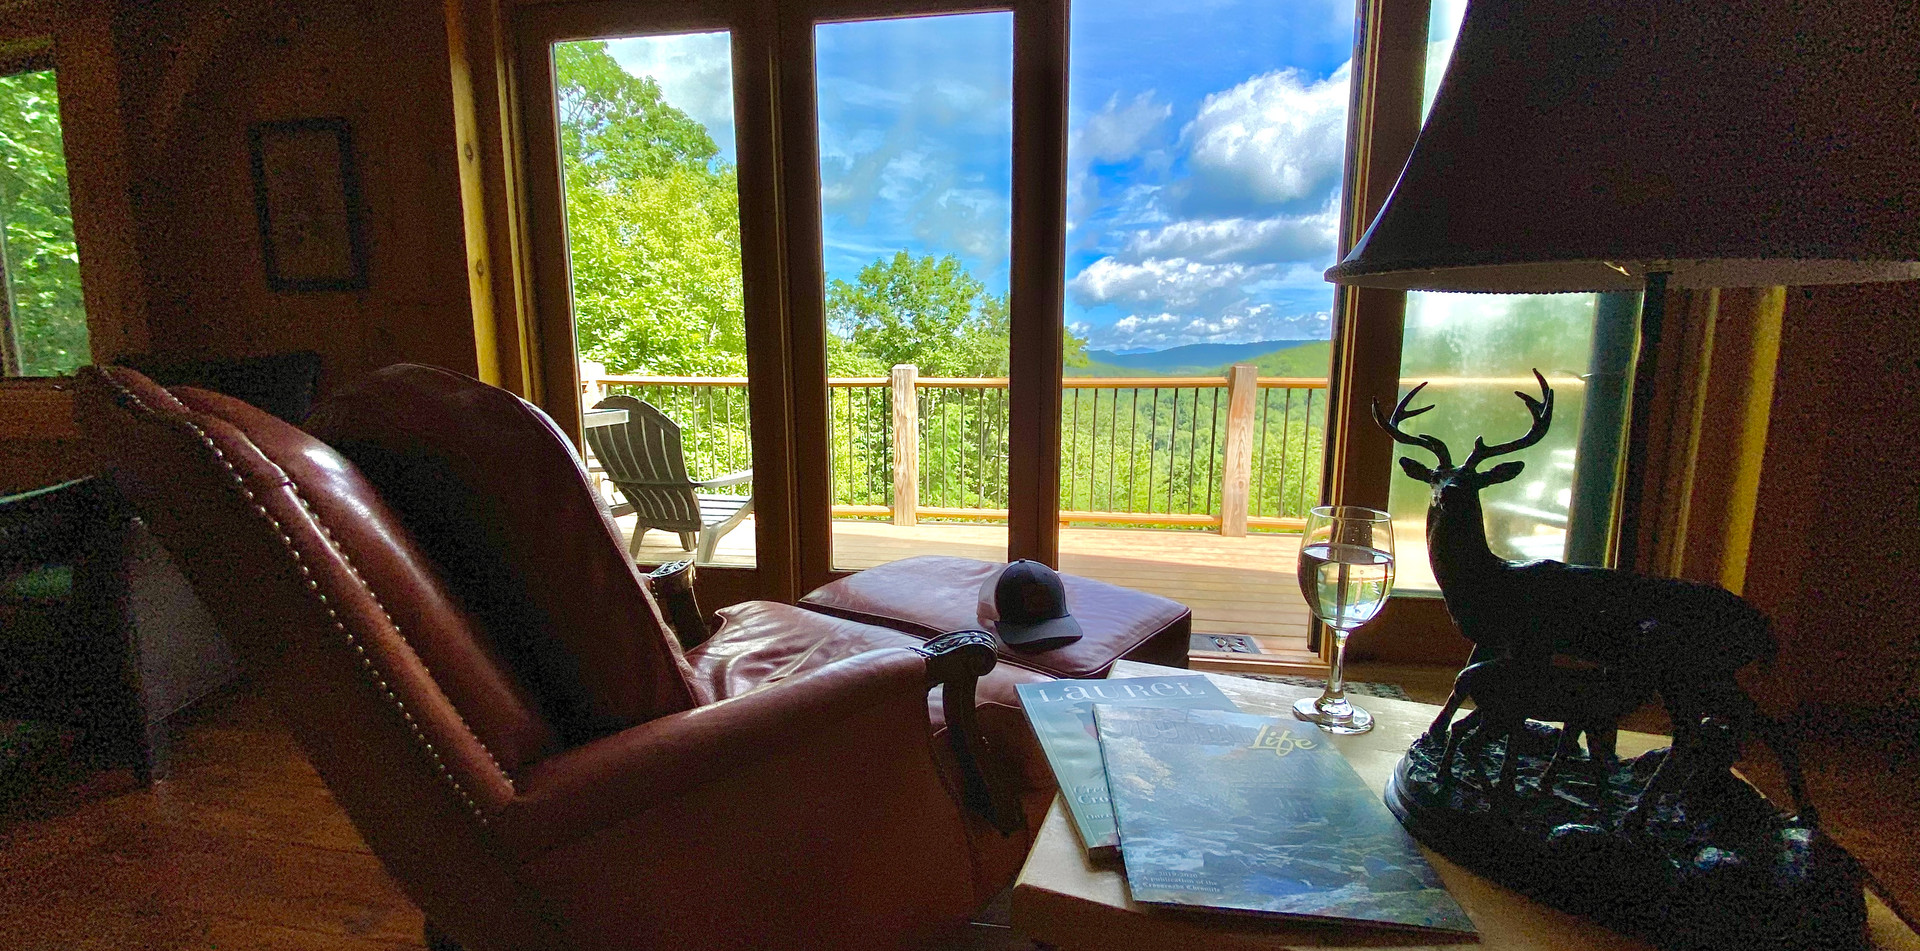 Grab your favorite book or attend a web conference with a view.